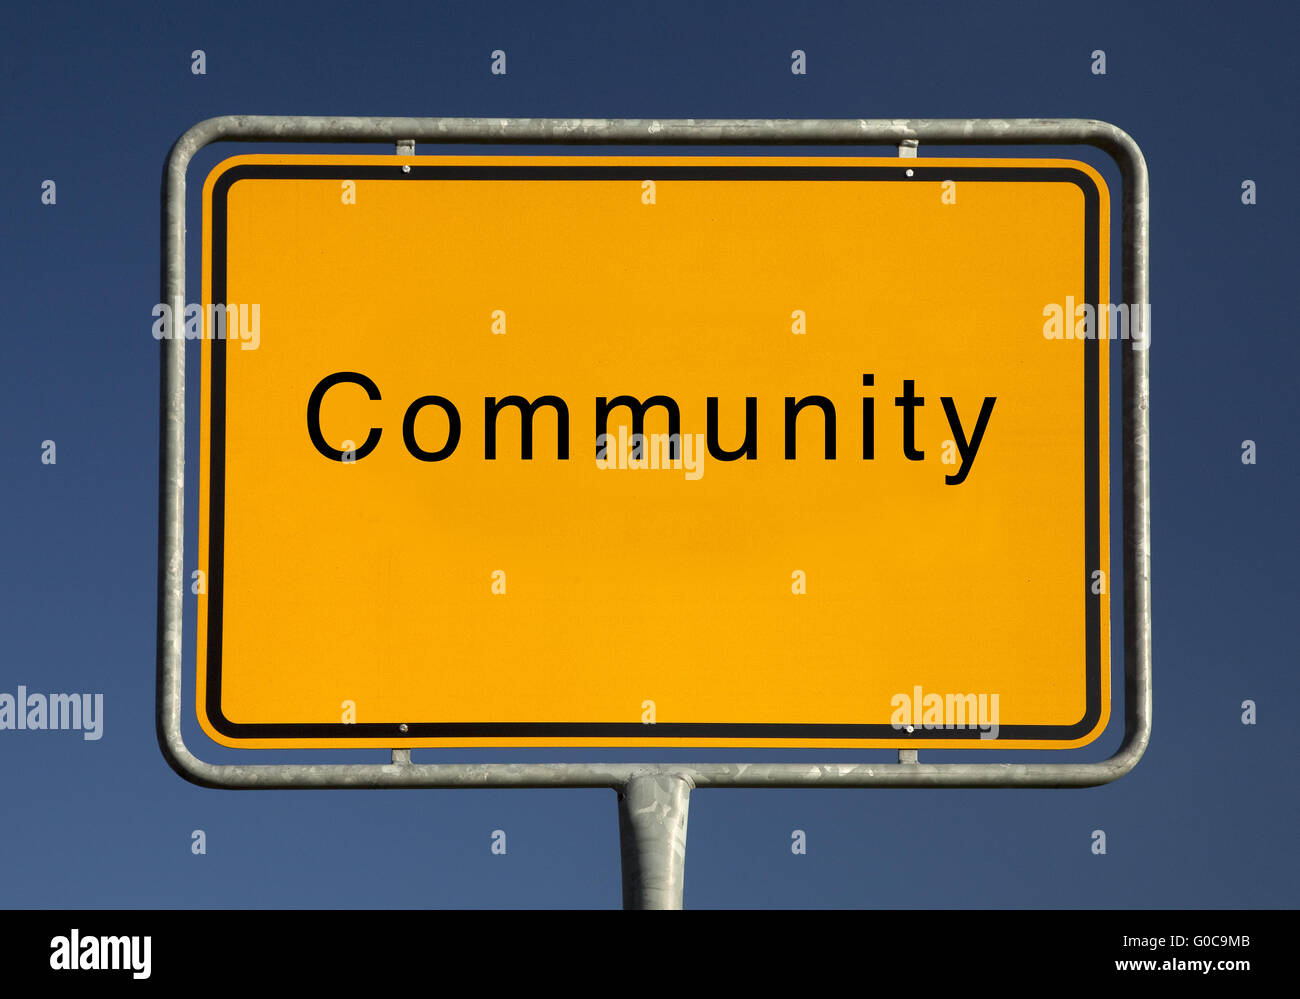 Town sign community, symbolic foto - Stock Image